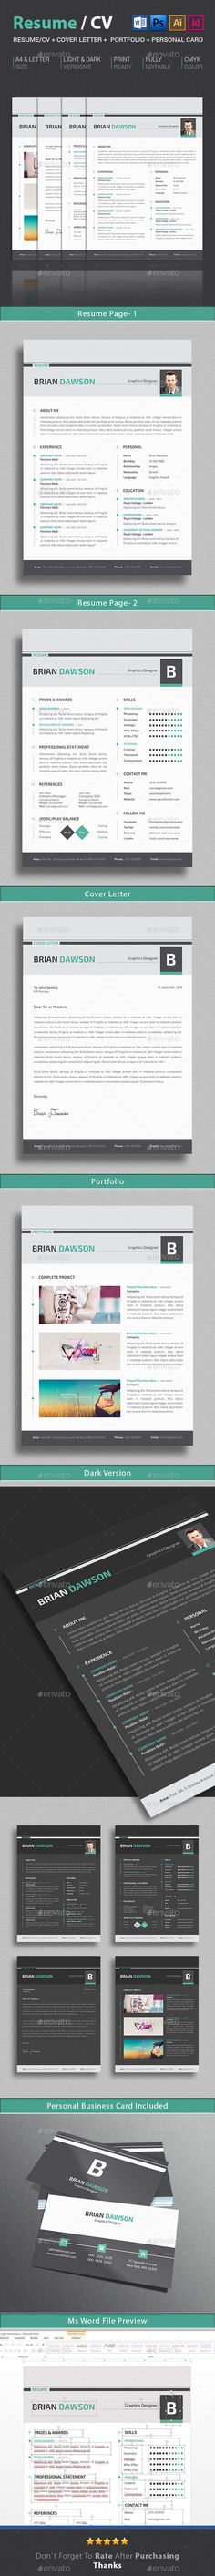 Elegant ResumeCv Resume Template Psd Indesign Indd Download